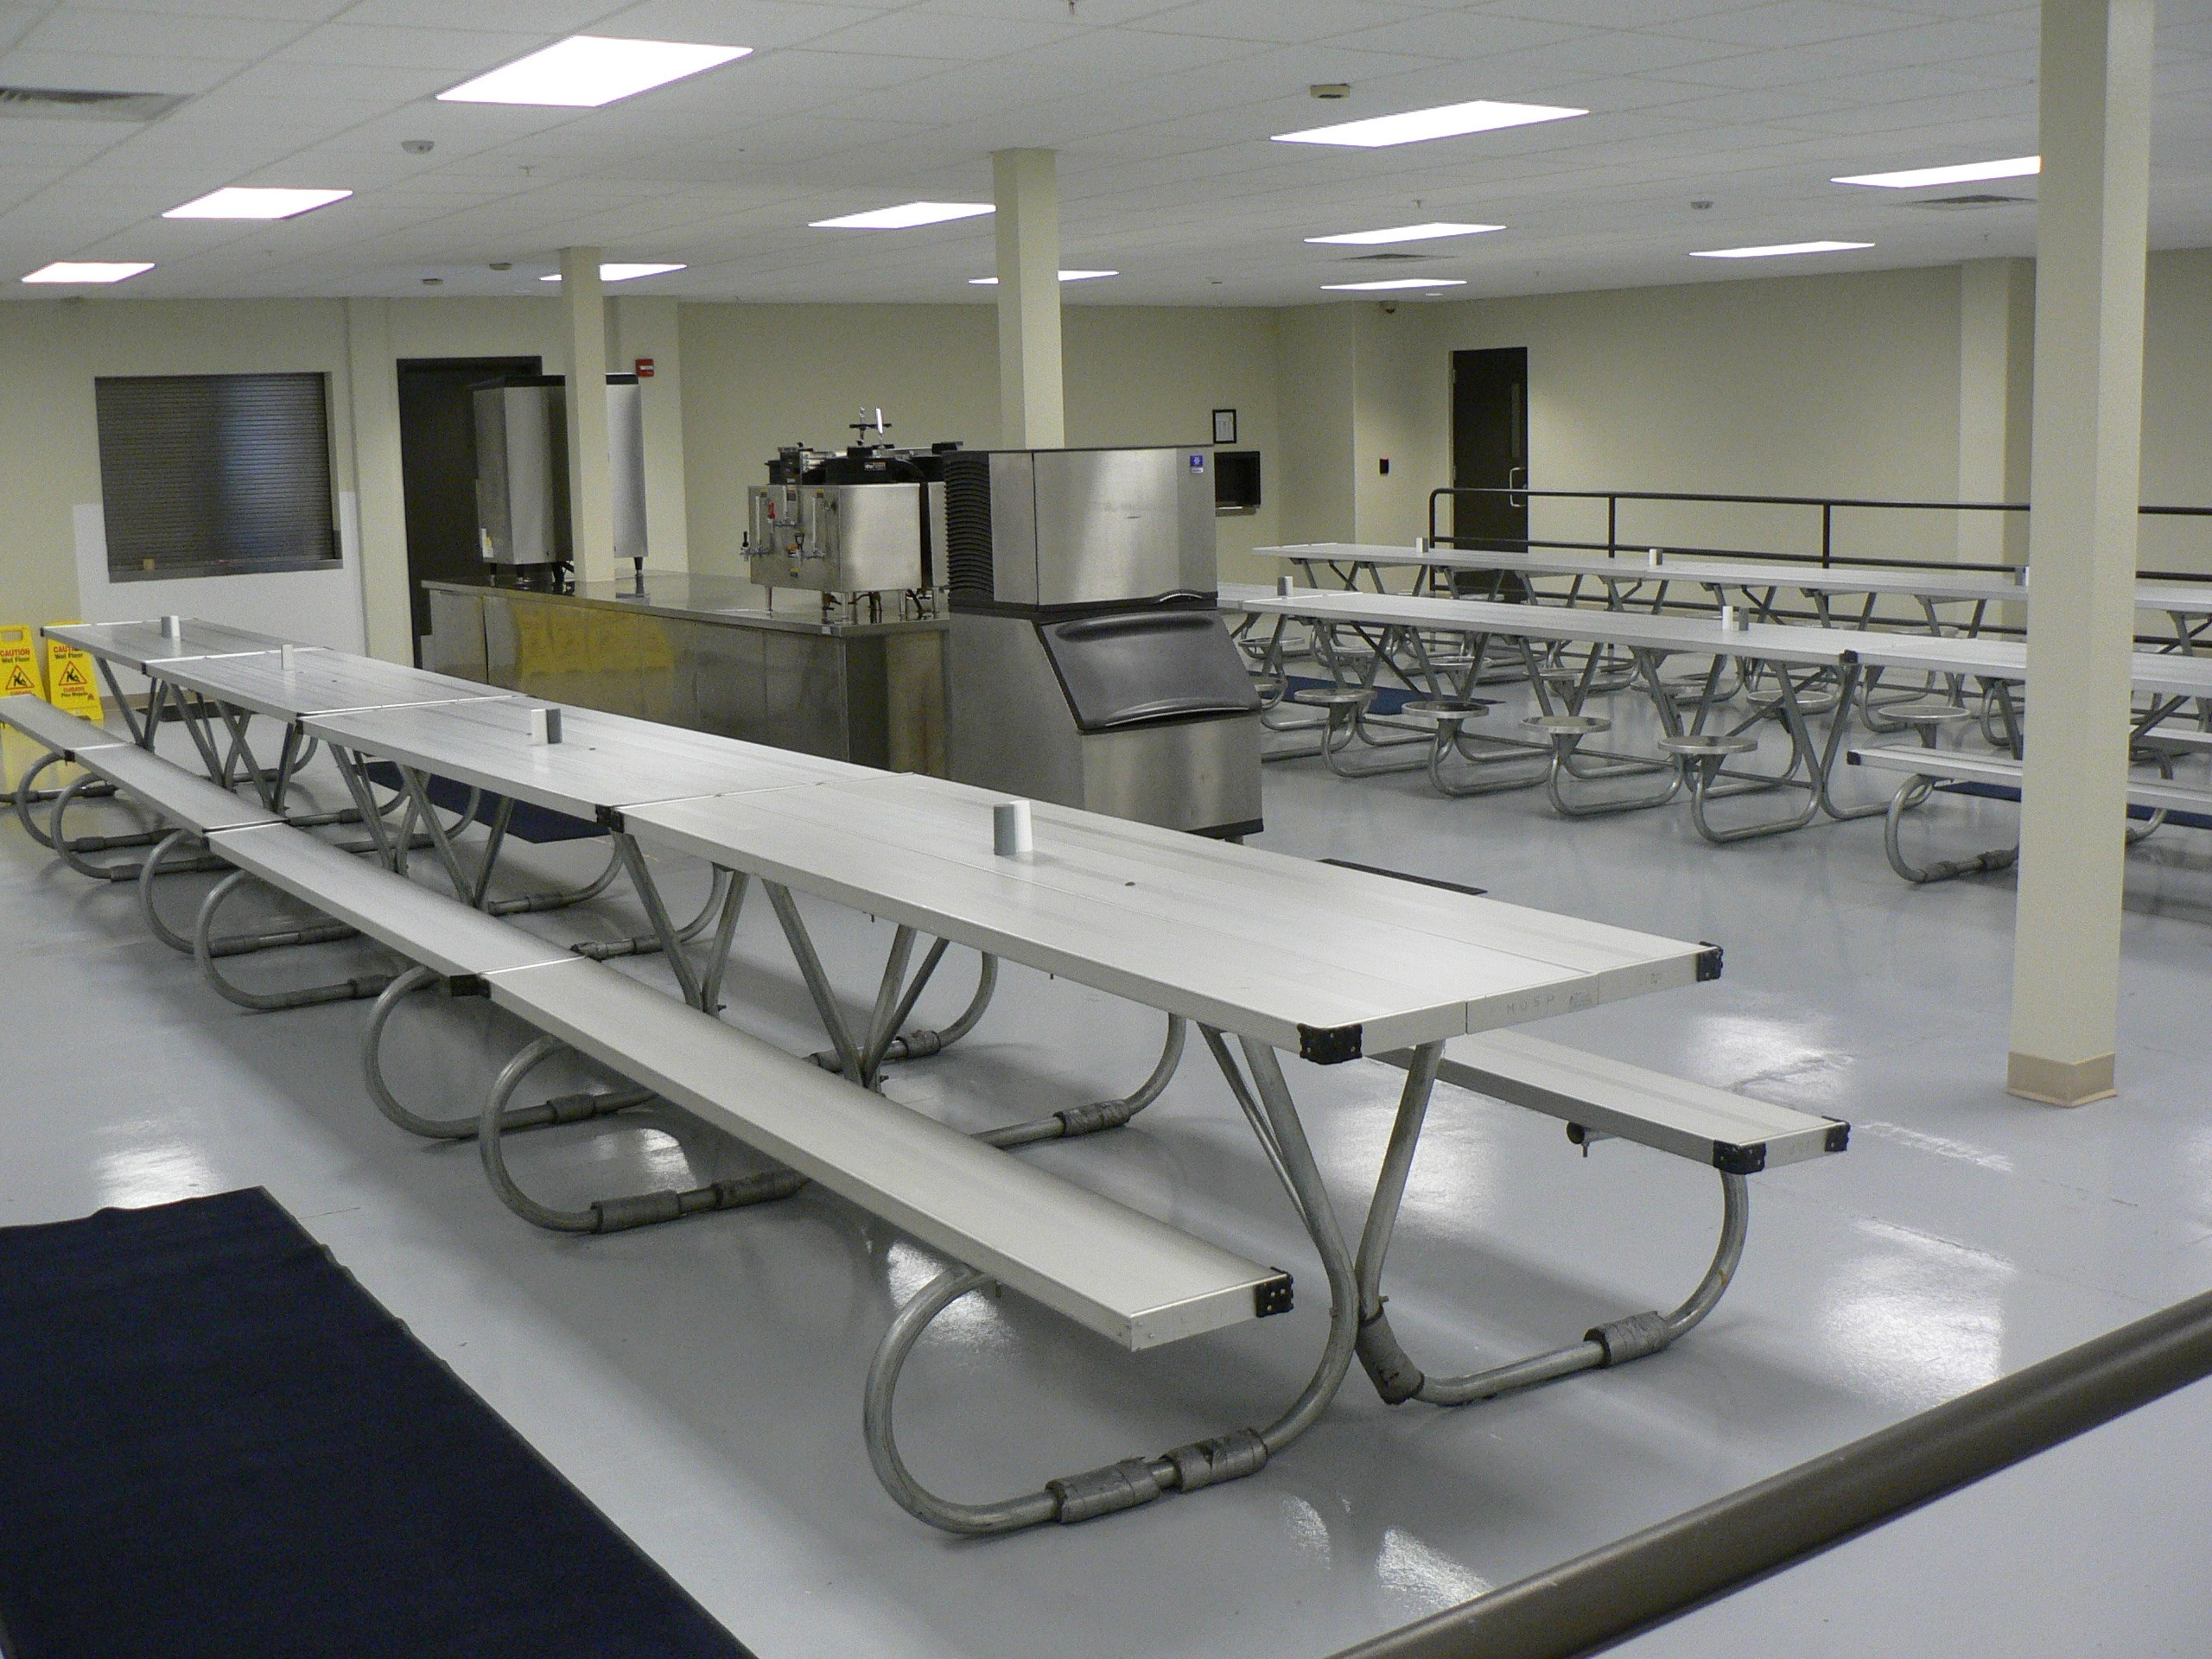 The dining room of the Rapid City Minimum Unit.